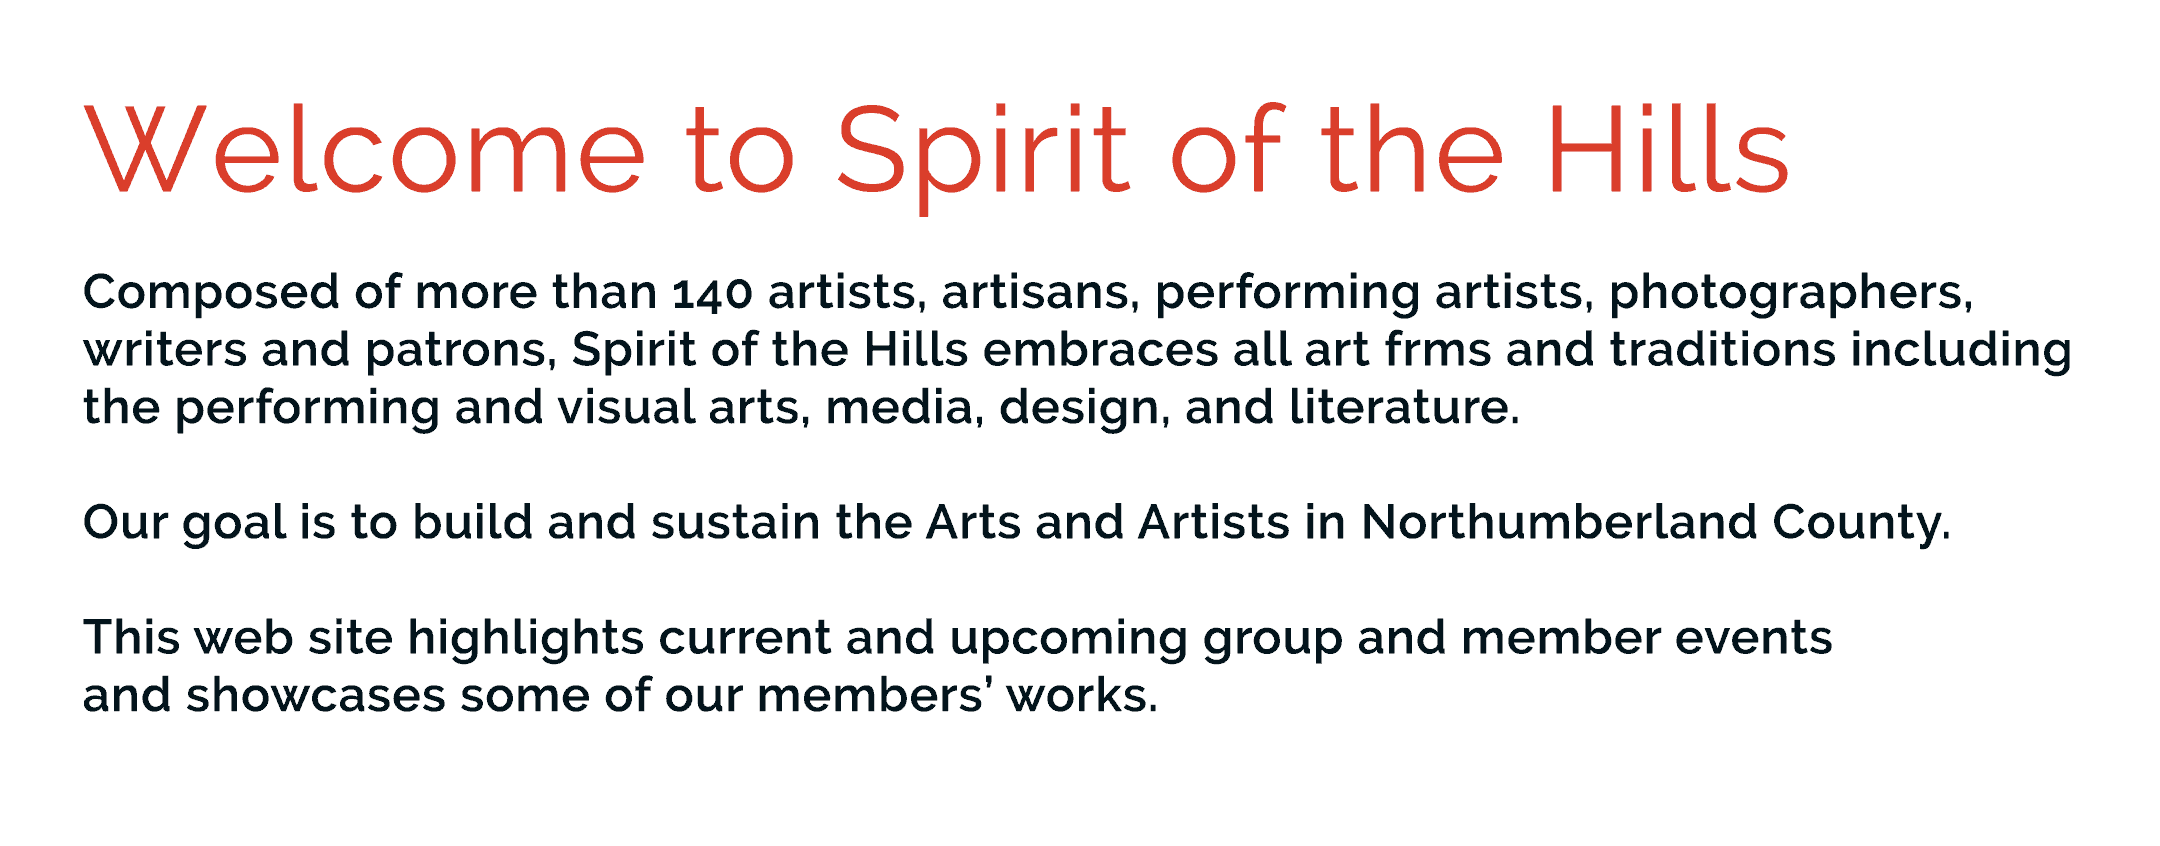 Welcome to Spirit of the Hills. Composed of more than 140 artists, artisans, performing artists, photographers, writers and patrons, Spirit of the Hills embraces all art forms and traditions including the performing and visual arts, media, design, and literature.  Our goal is to build and sustain the Arts and Artists in Northumberland County.  This web site highlights current and upcoming group and member events  and showcases some of our members' works.